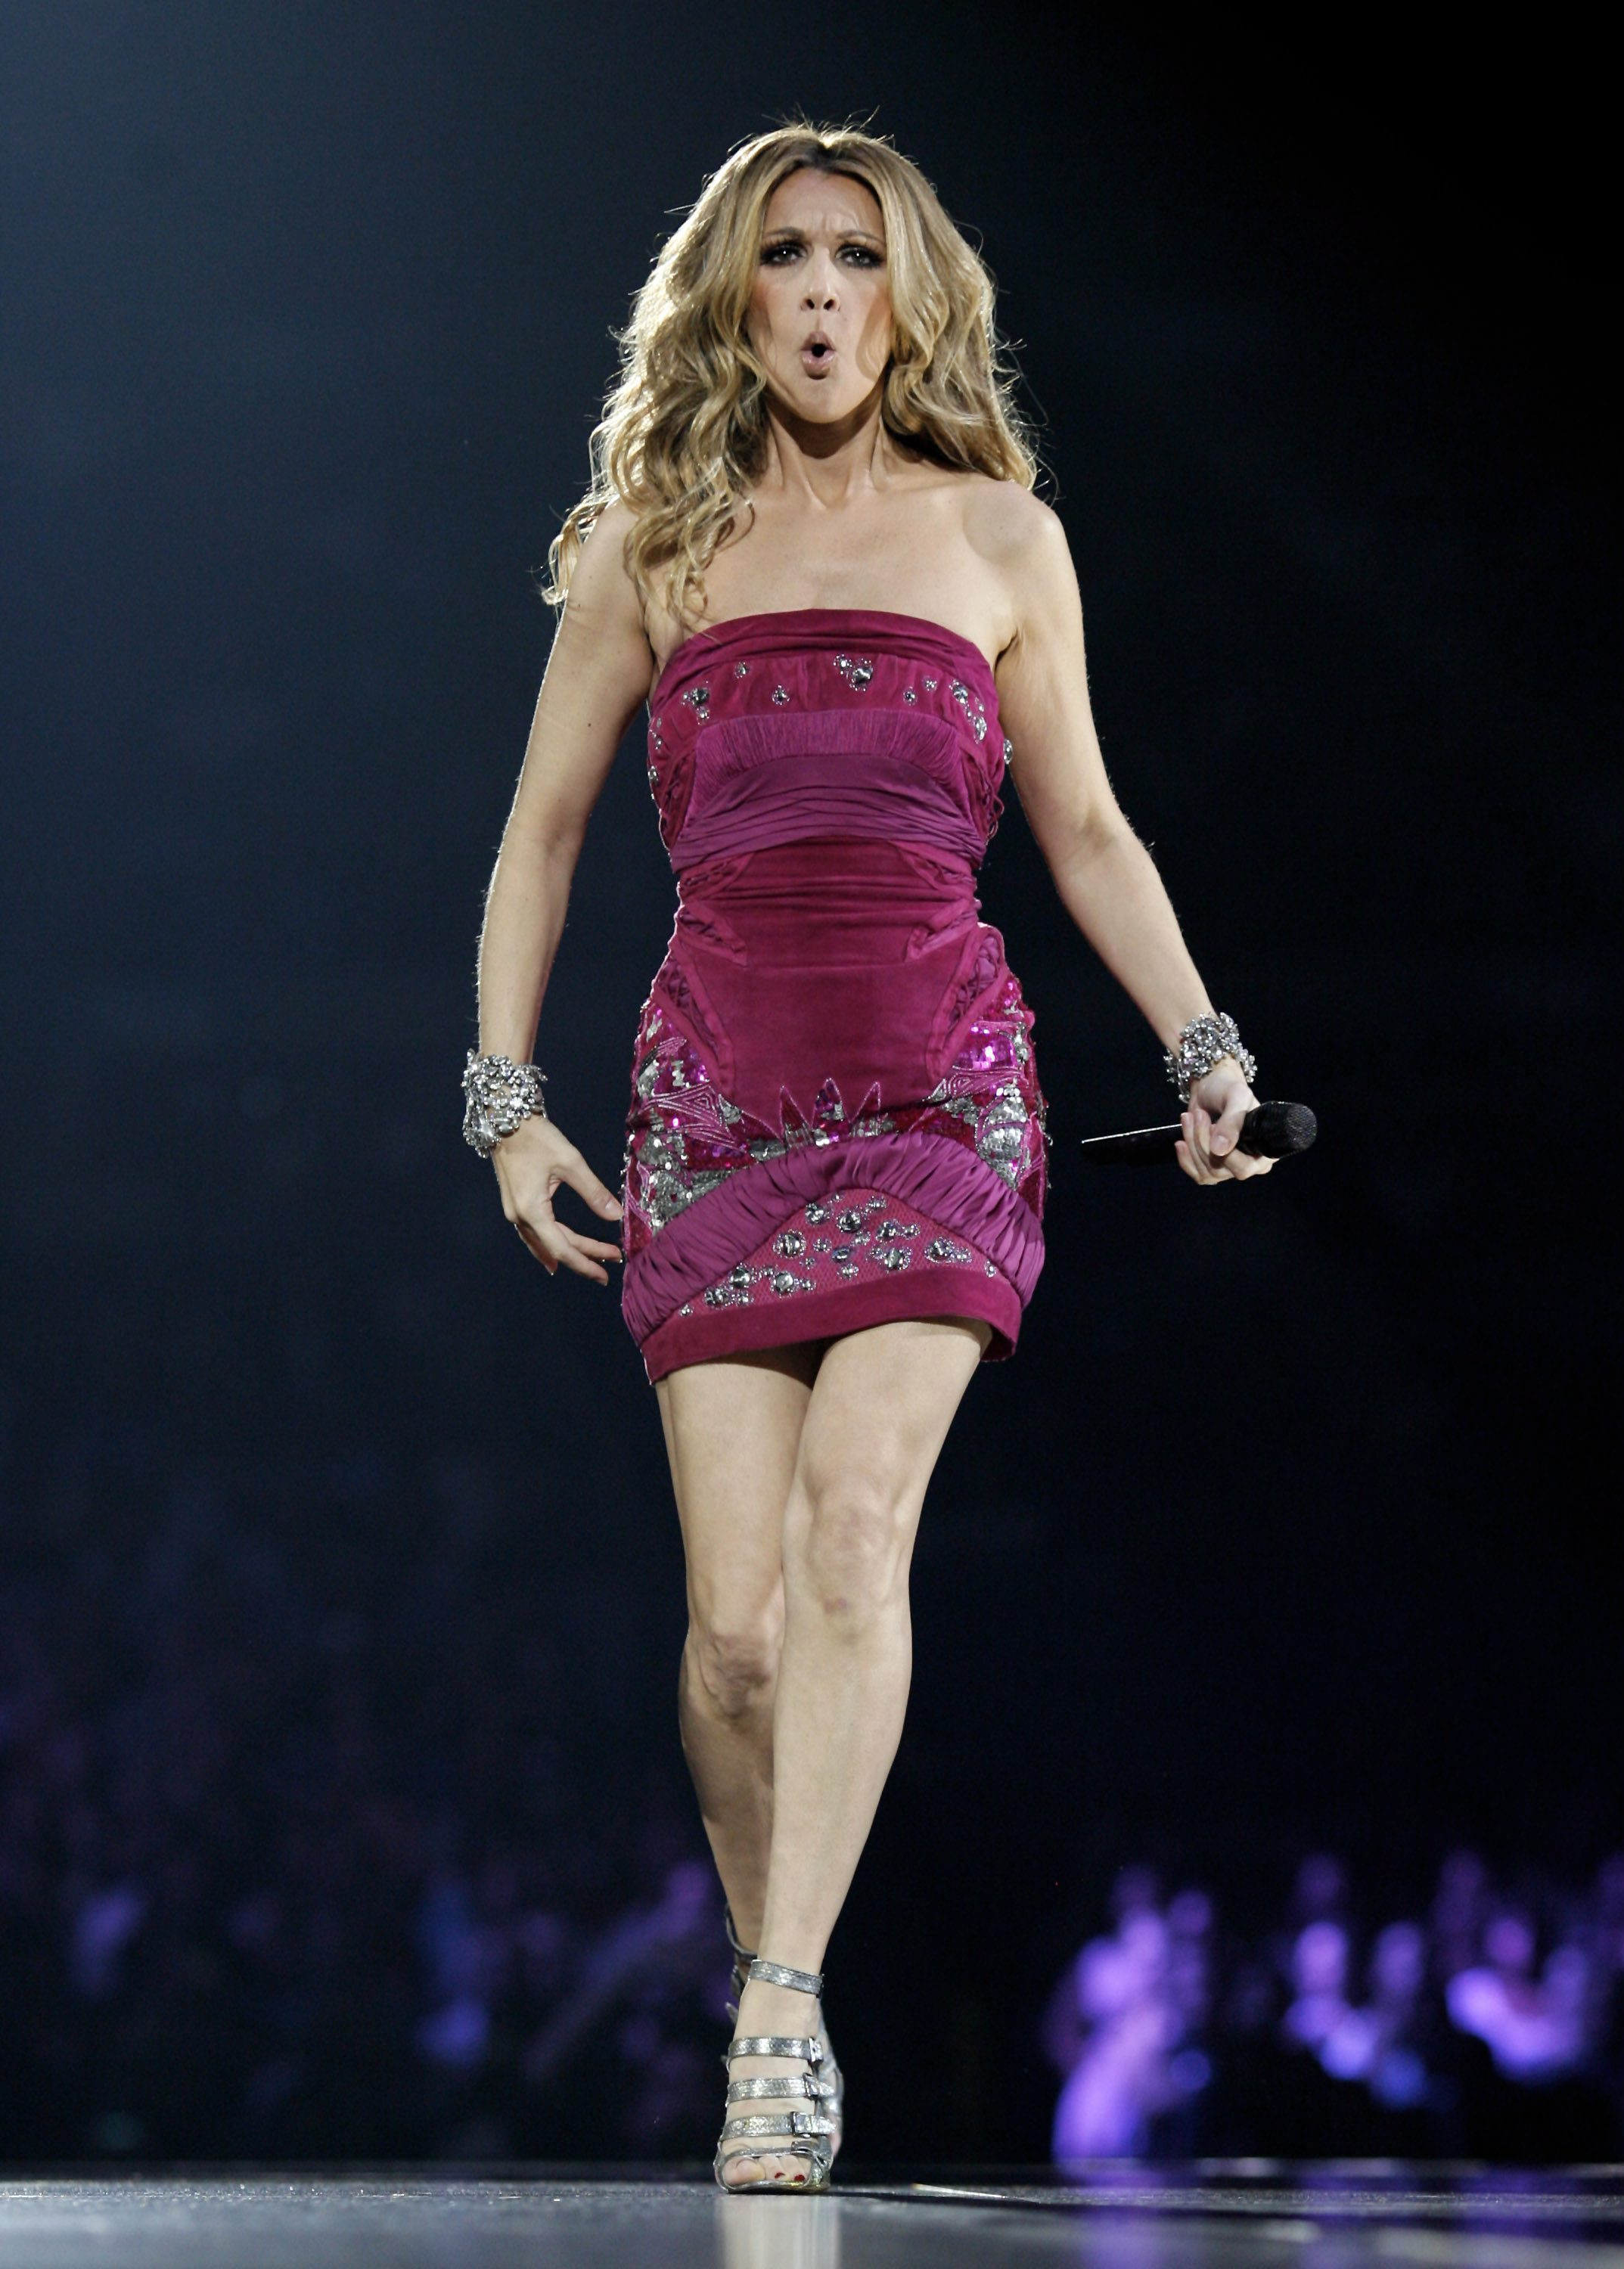 Singer Celine Dion performs at Madison Square Garden Monday, Sept. 15, 2008 in New York. (AP Photo/Jason DeCrow)